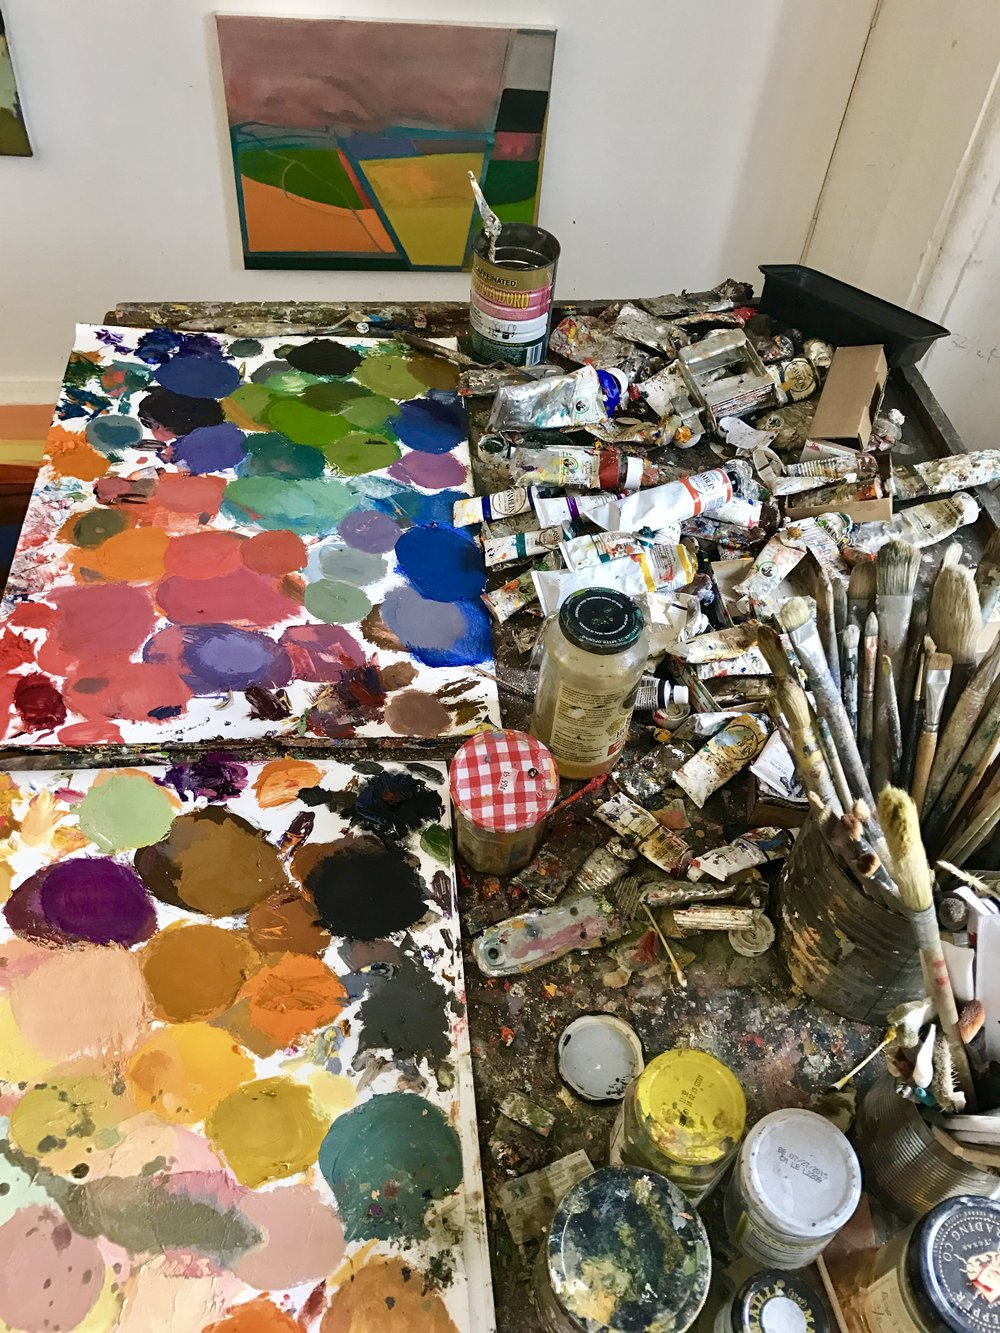 The paints and brushes Elizabeth Hazan uses for her work.